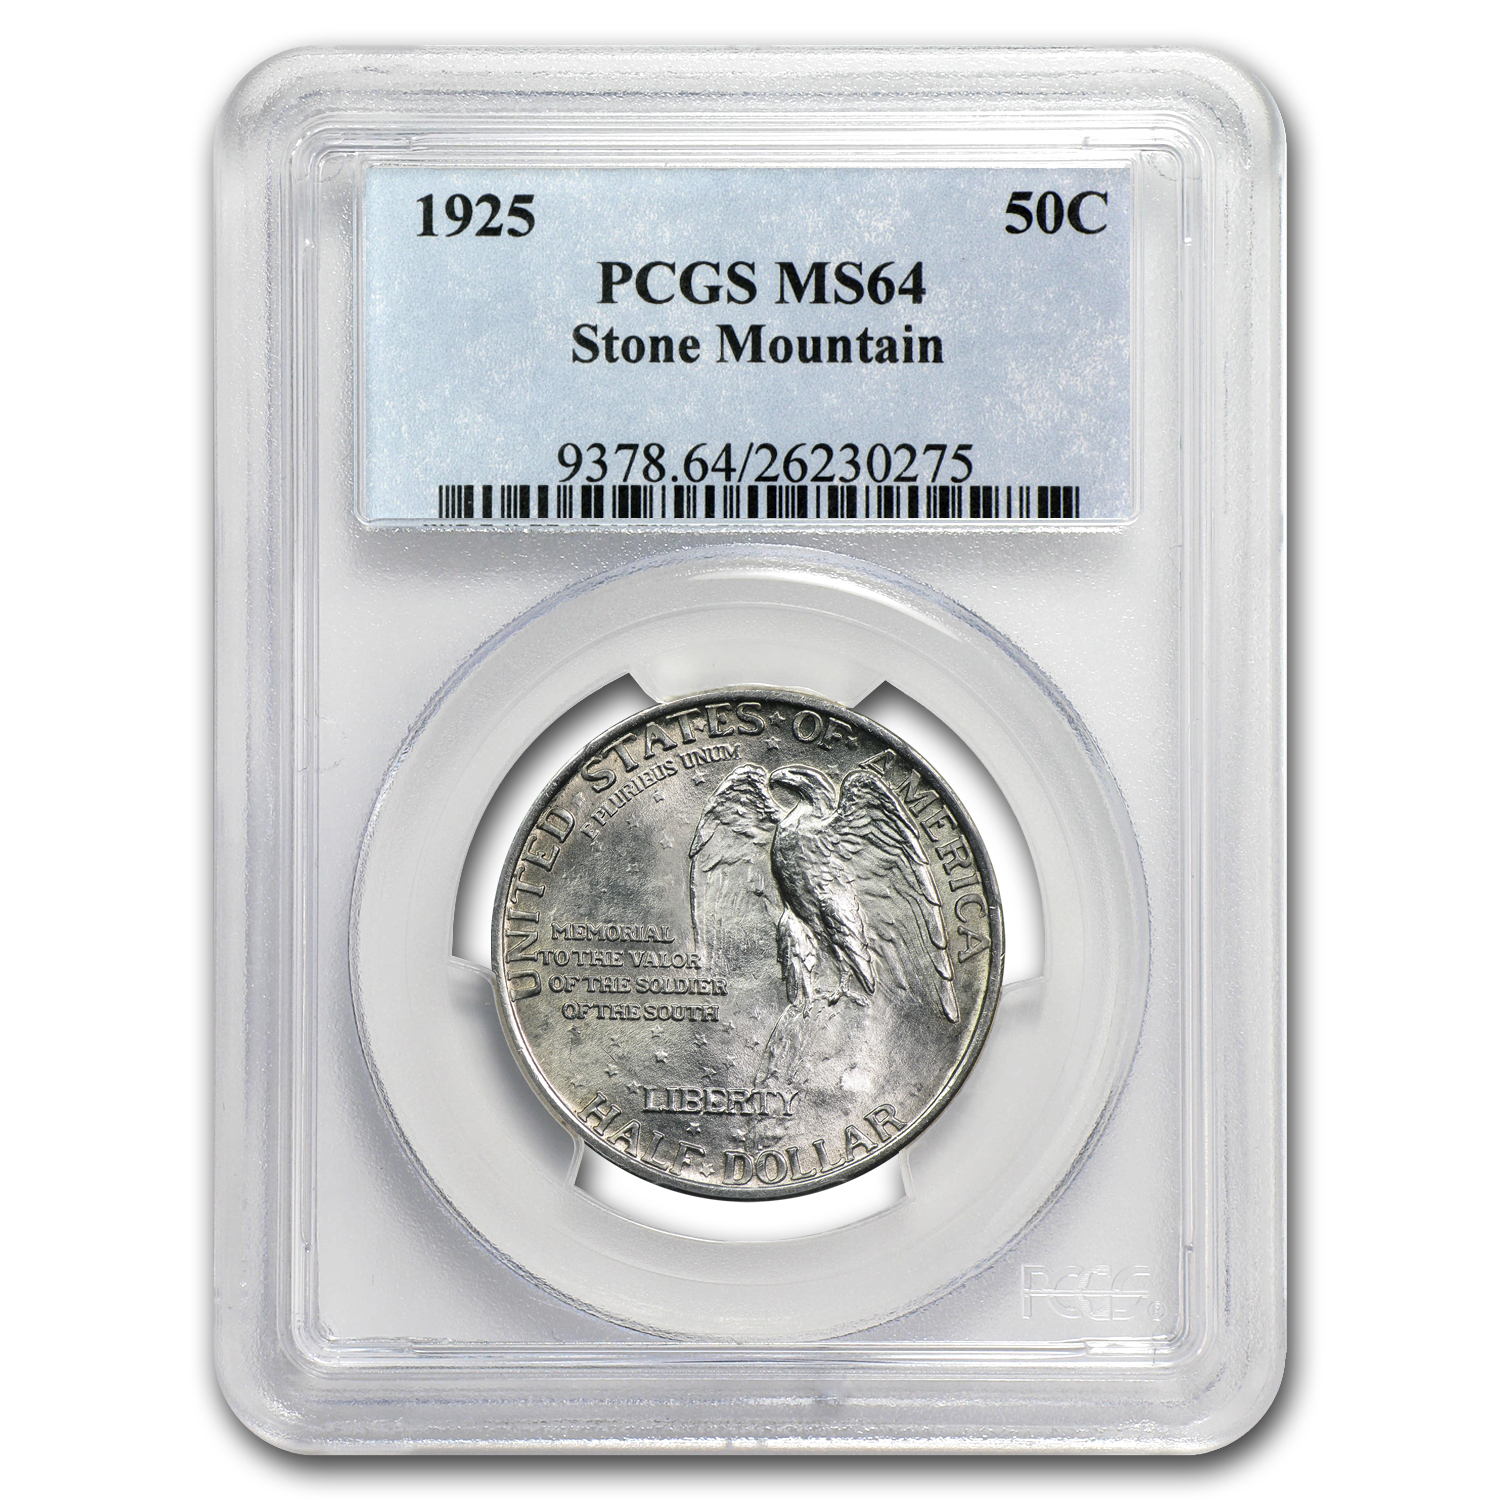 1925 Stone Mountain Memorial Half Dollar Mint State-64 PCGS